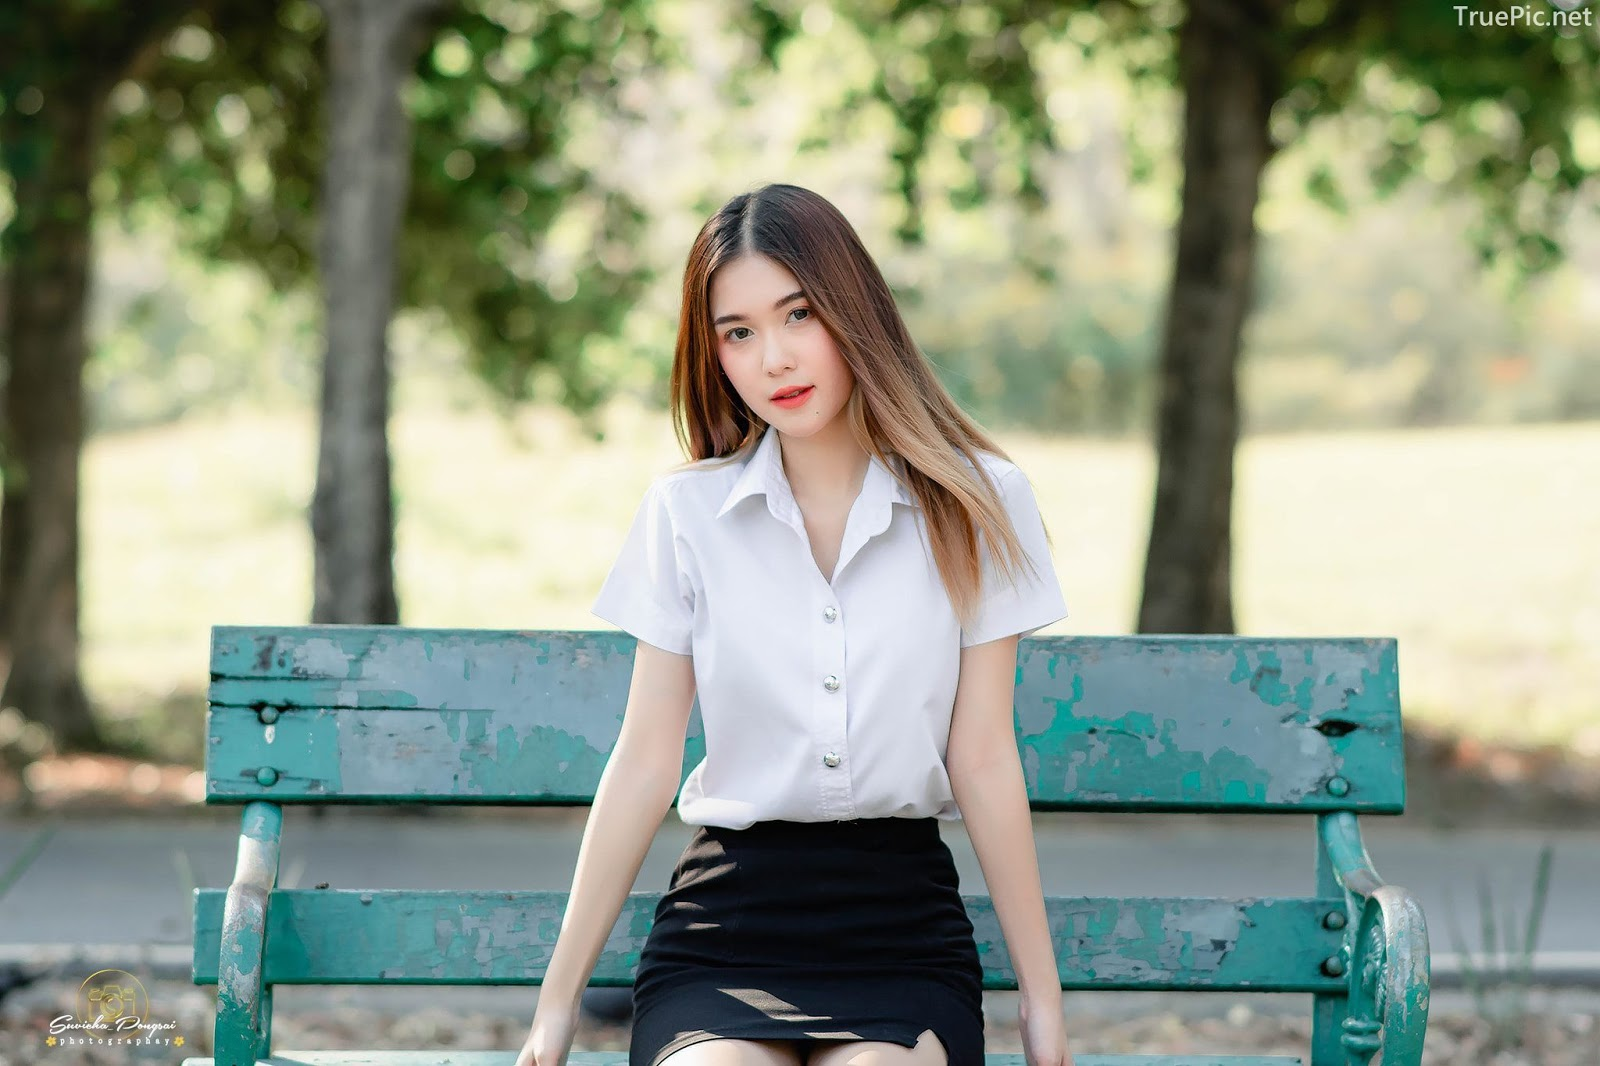 Image-Hot-Girl-Thailand-Pitcha-Srisattabuth-Cute-Student-With-a-Sweet-Smile-TruePic.net- Picture-1